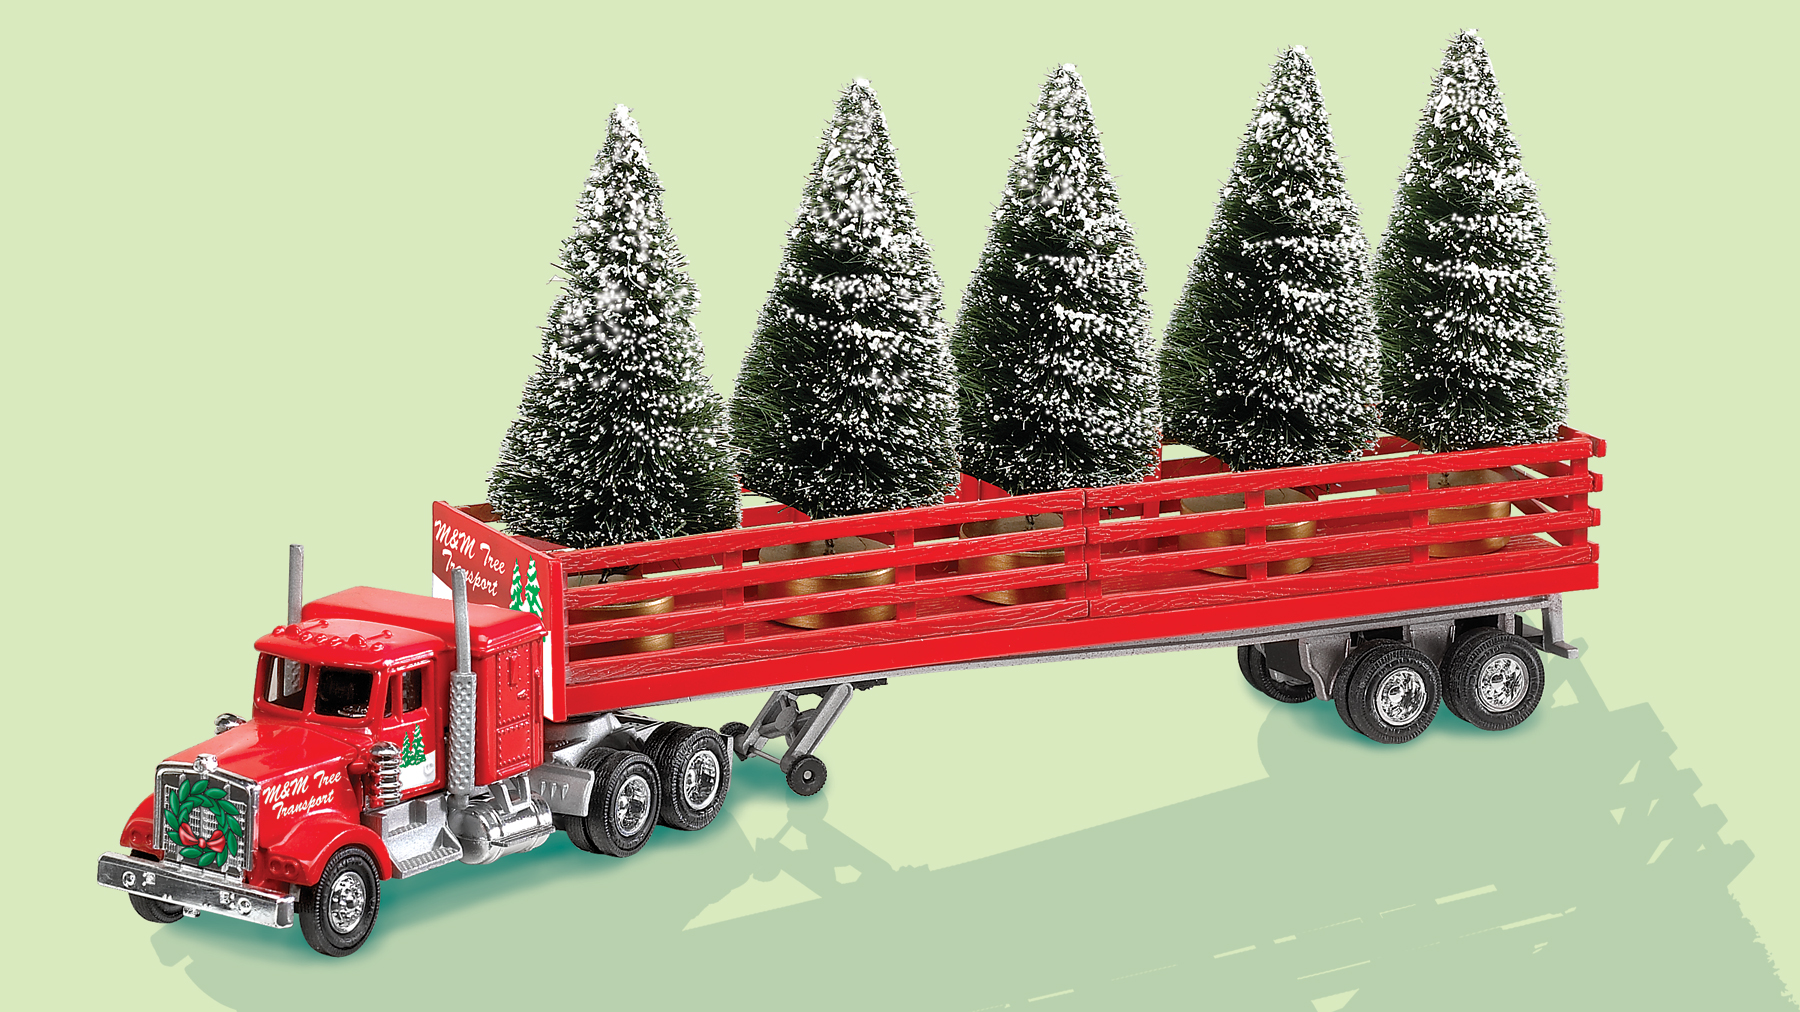 Christmas Tractor and Trailer with Trees